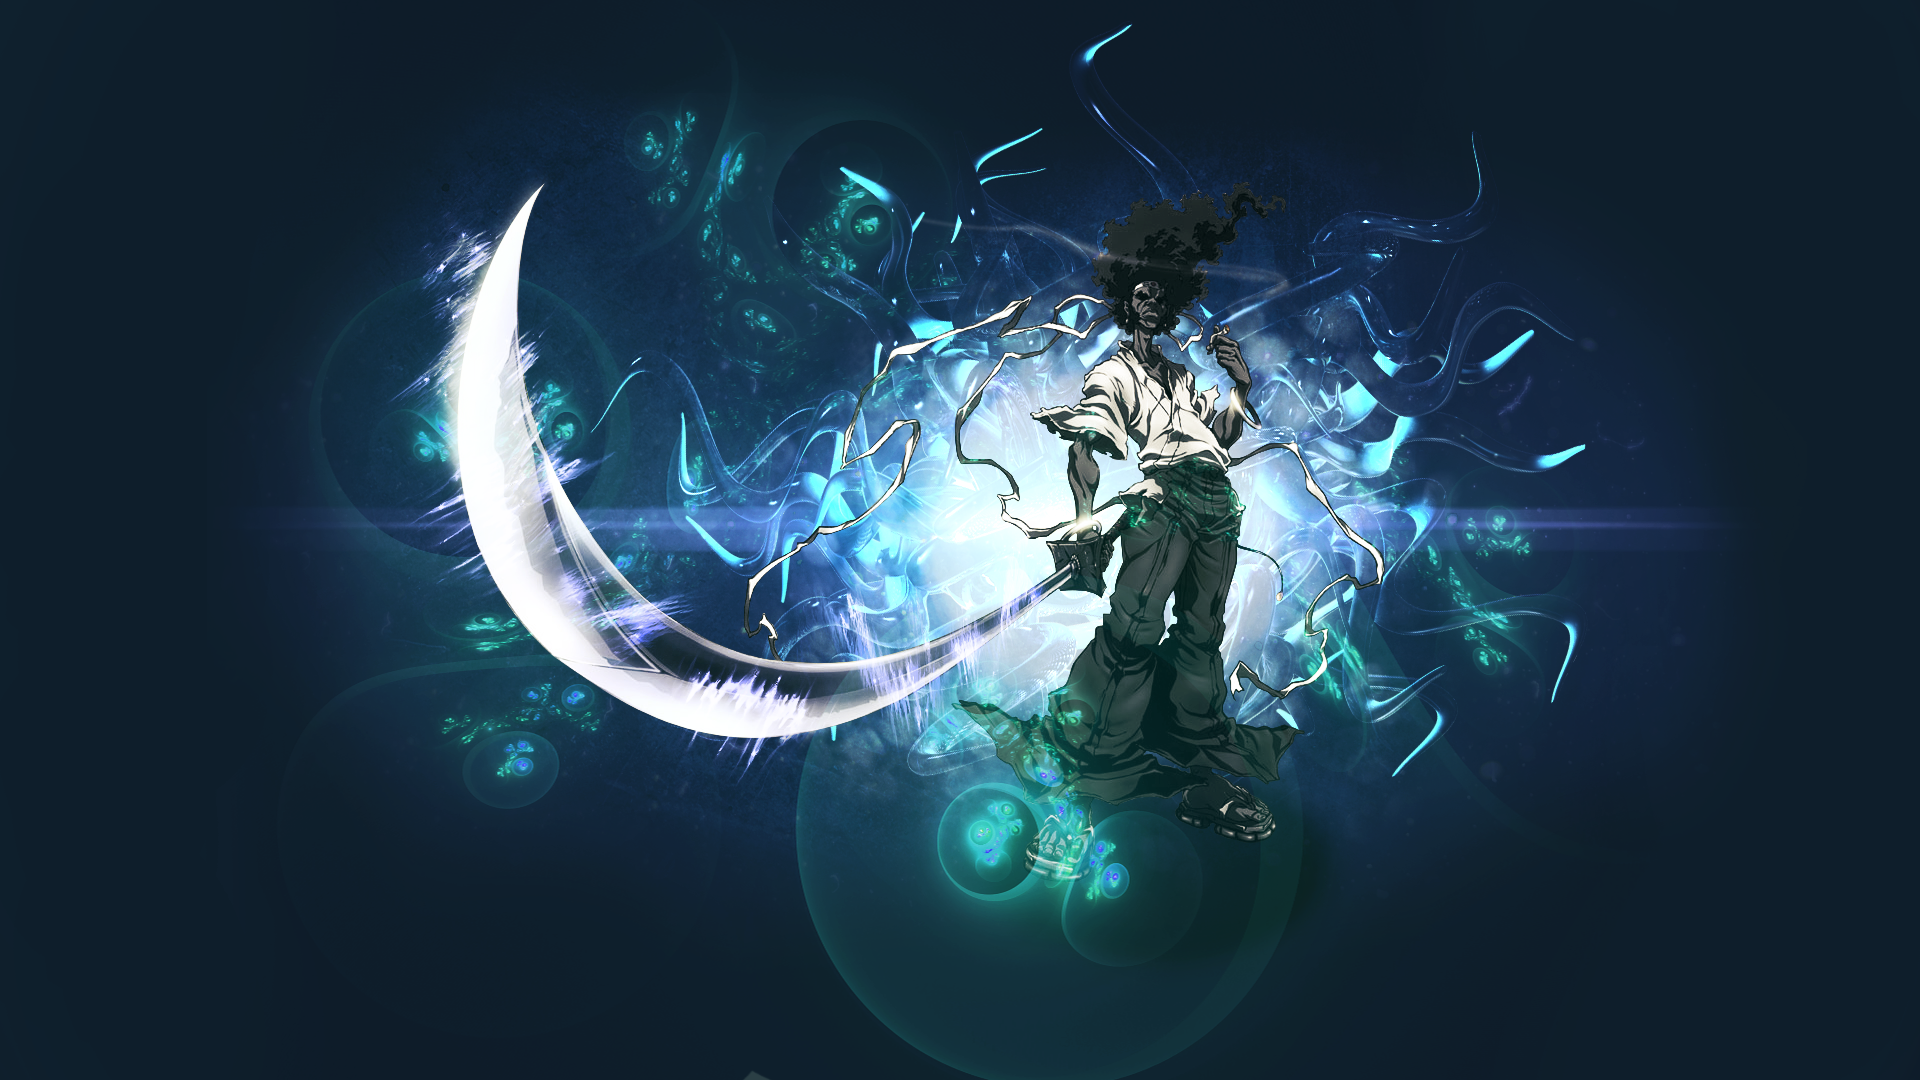 Afro Samurai Wallpaper Inc Wip Video By Themmmcake On